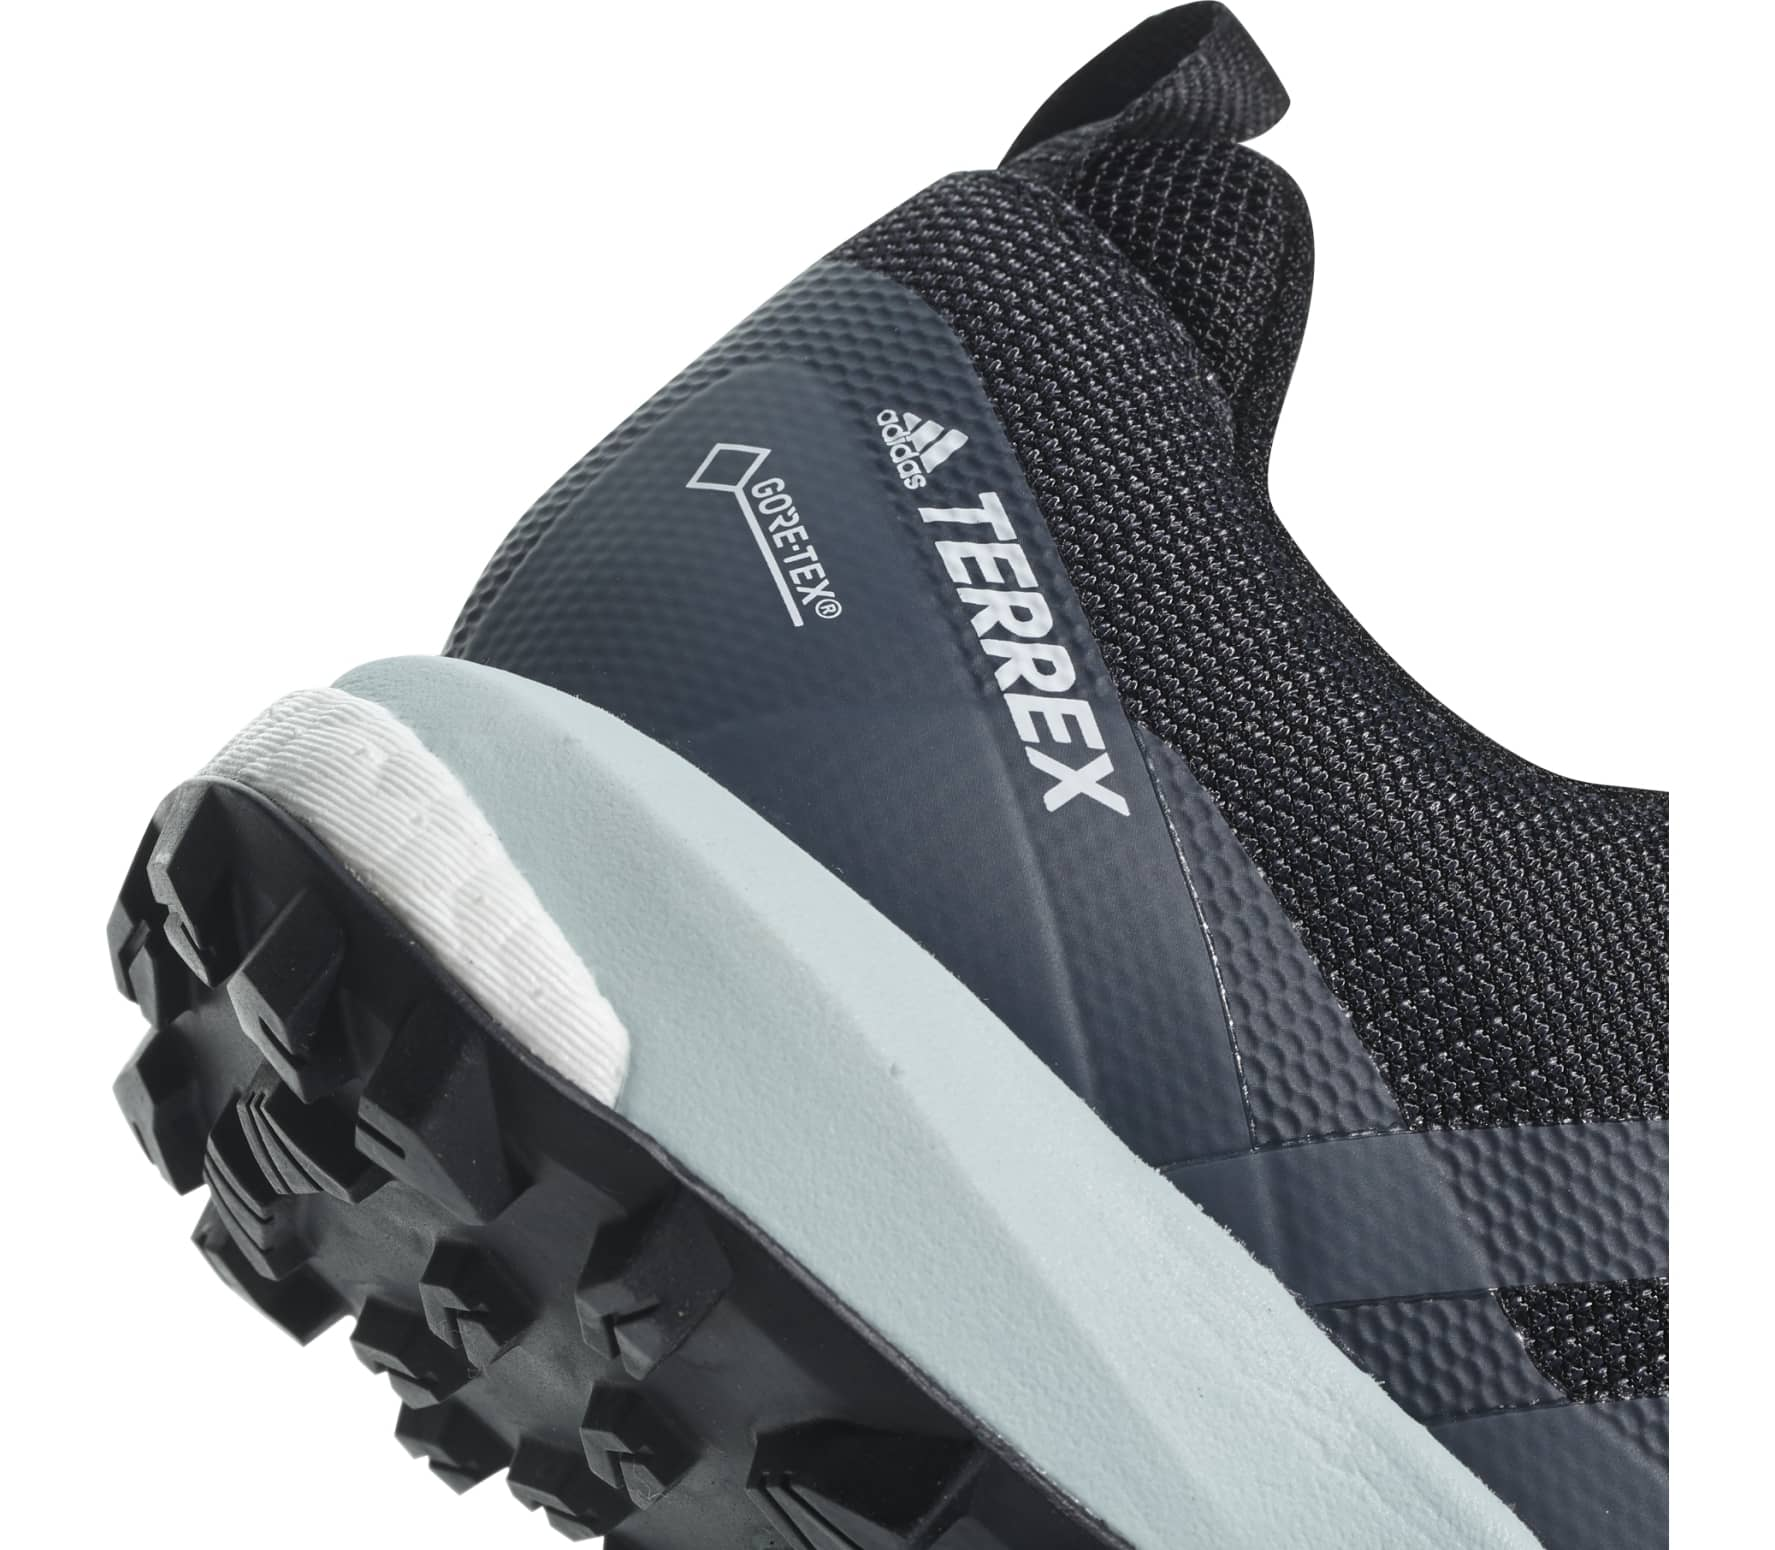 Details about adidas Terrex Agravic GTX Womens Running Shoes Grey